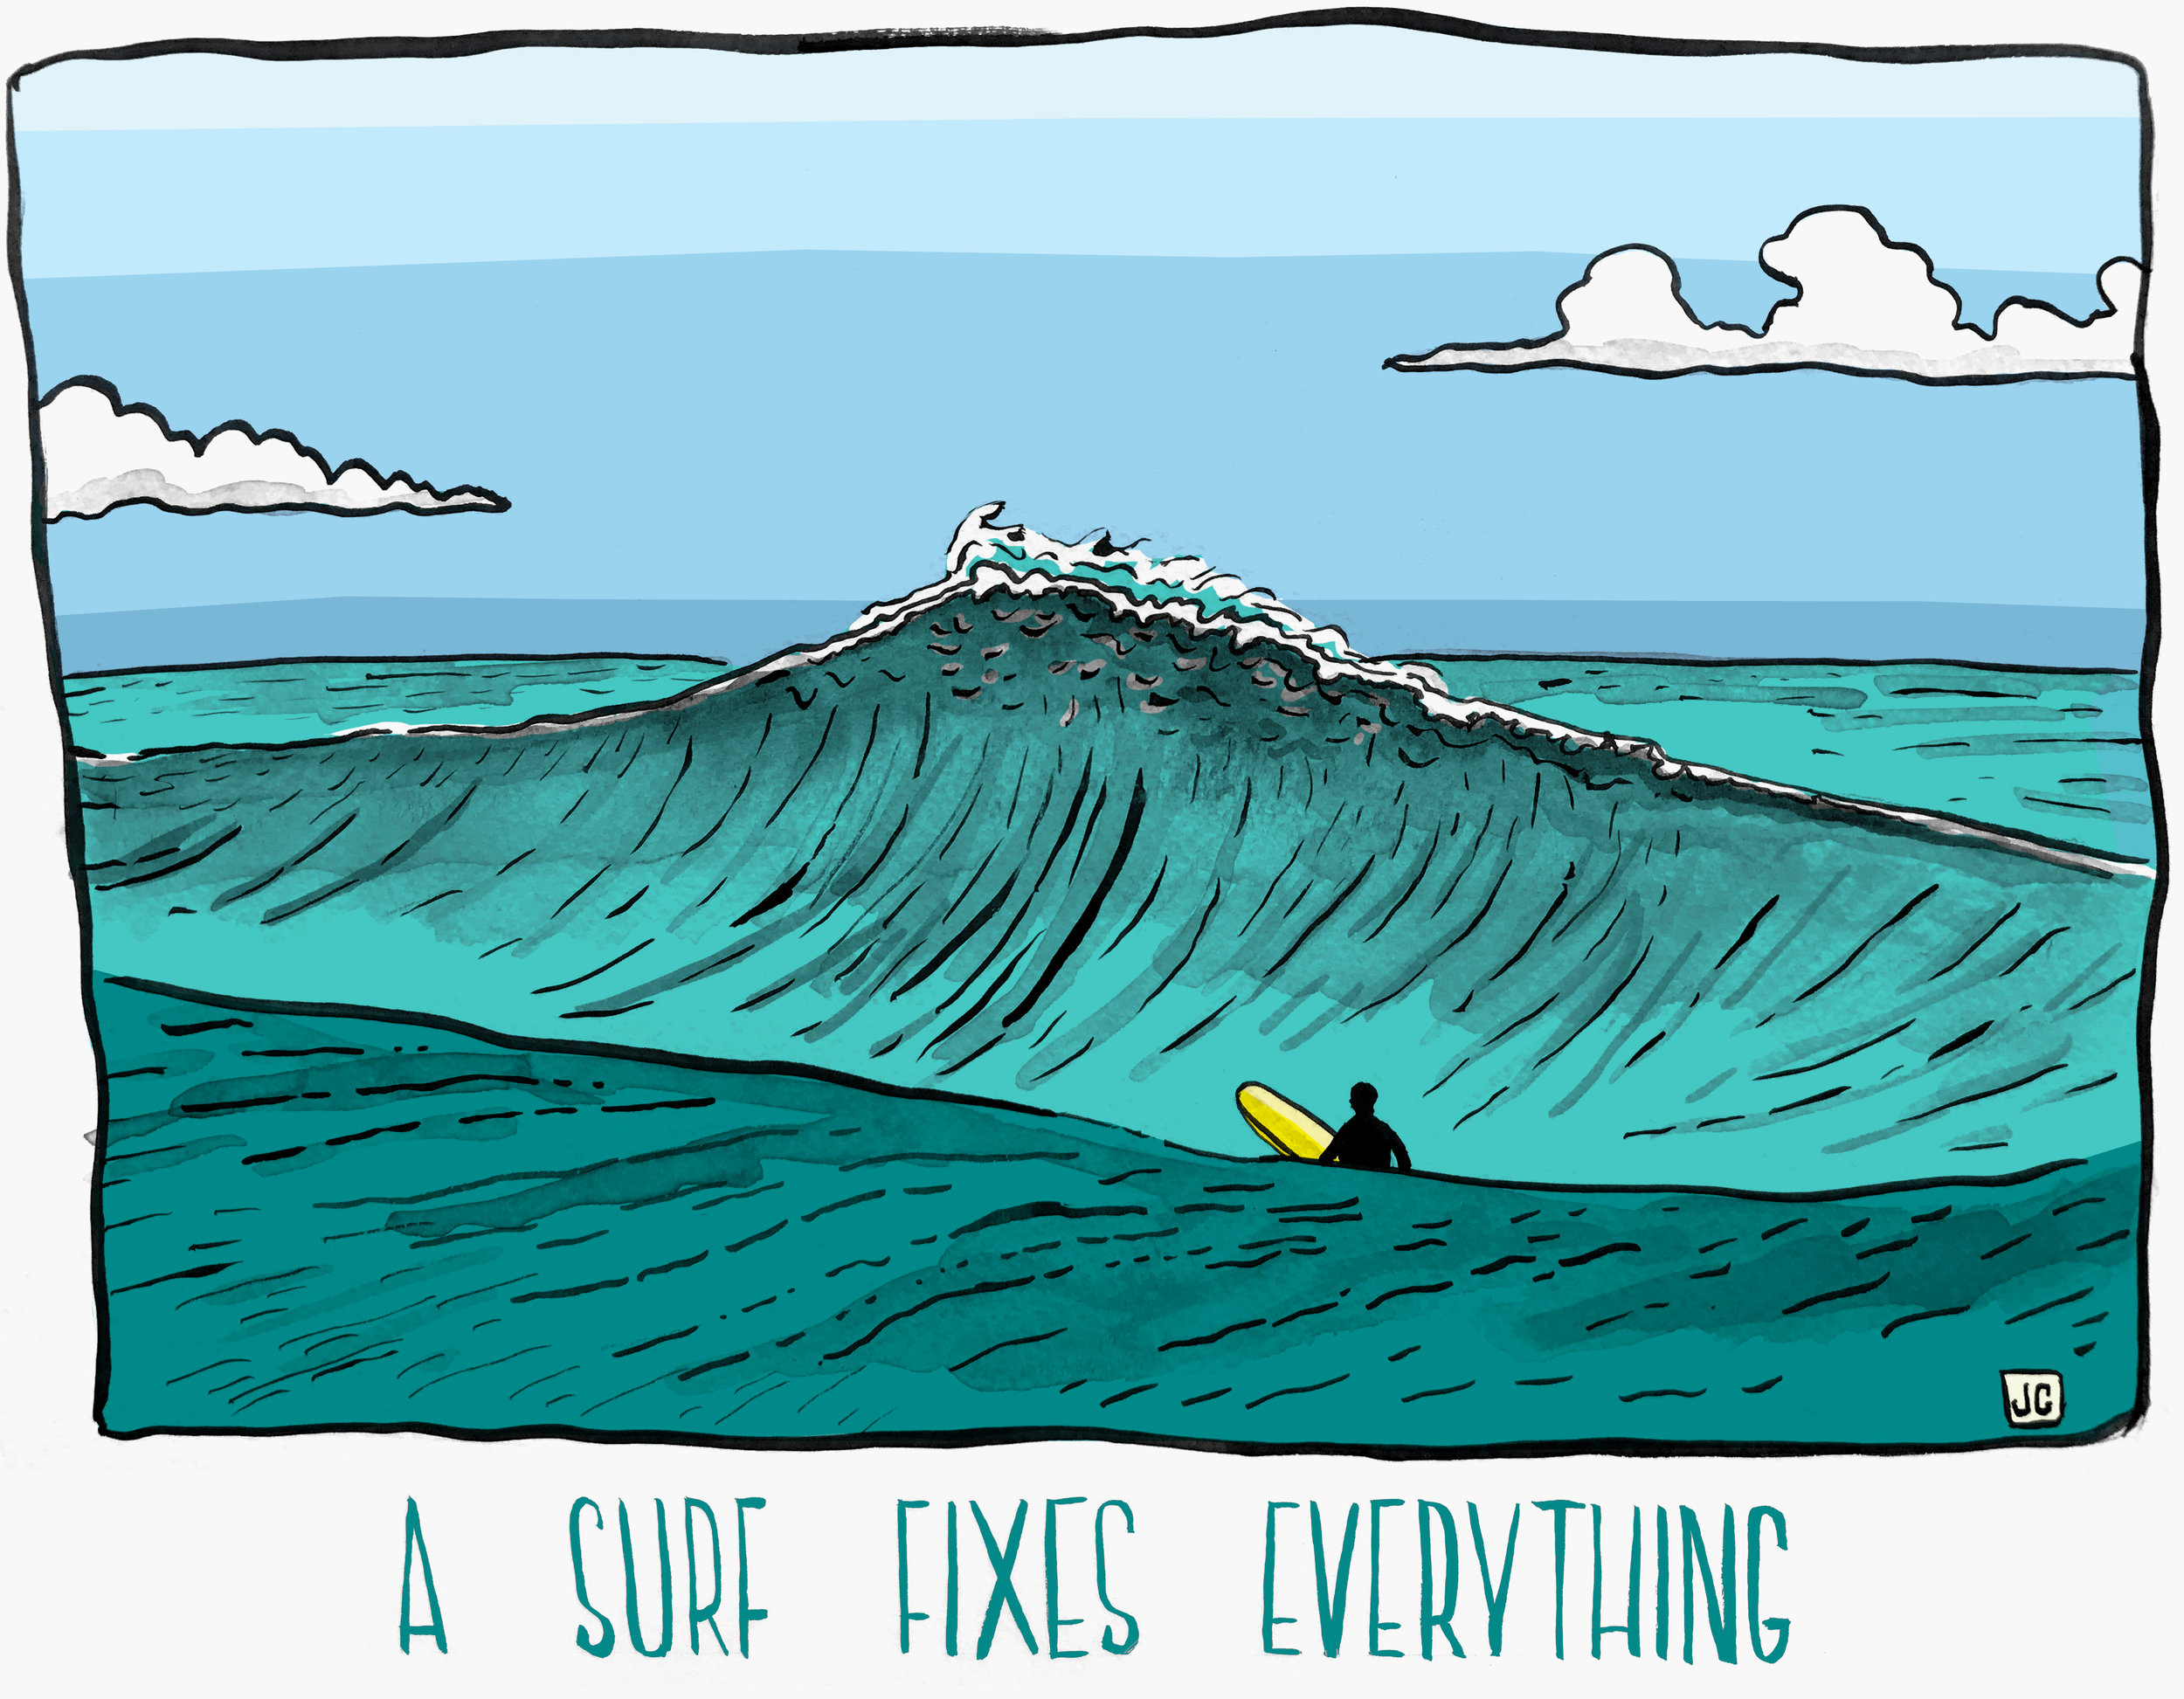 Surf-Fixes-Everything.jpg